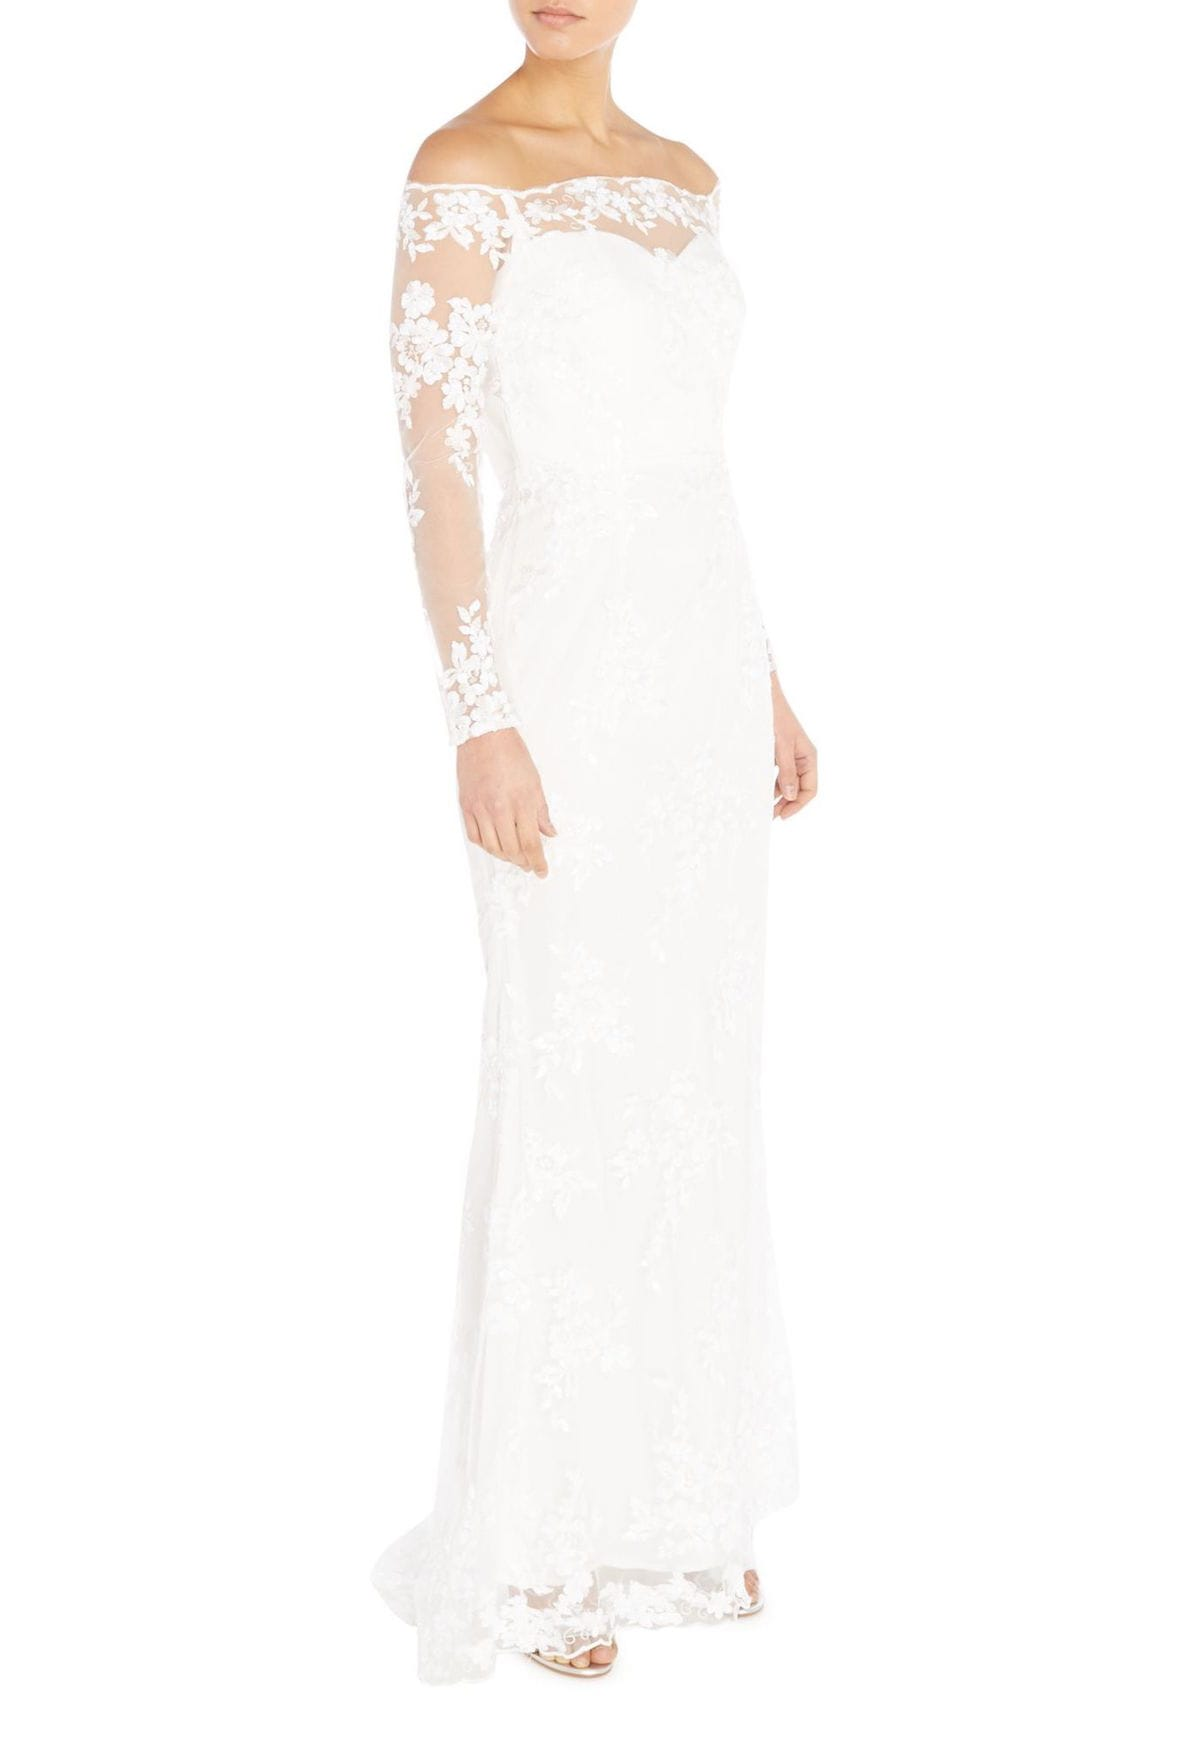 Bridal Gown With All Over Lace Detail By Little Mistress At House Of Fraser 200